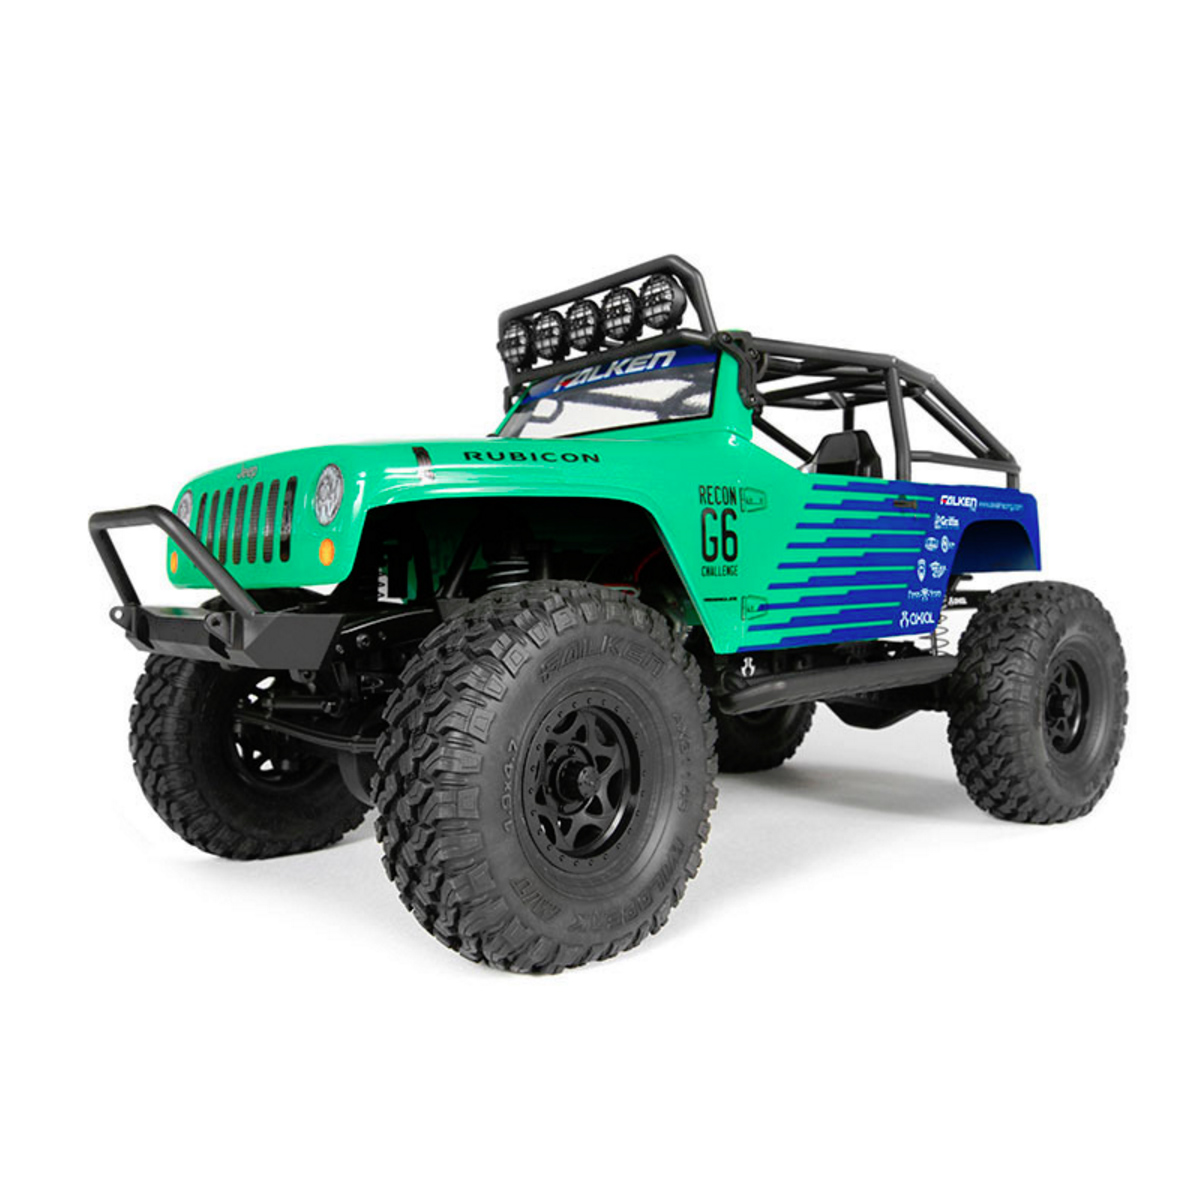 Axial R C : Axial jeep wrangler g falken edition rc truck at